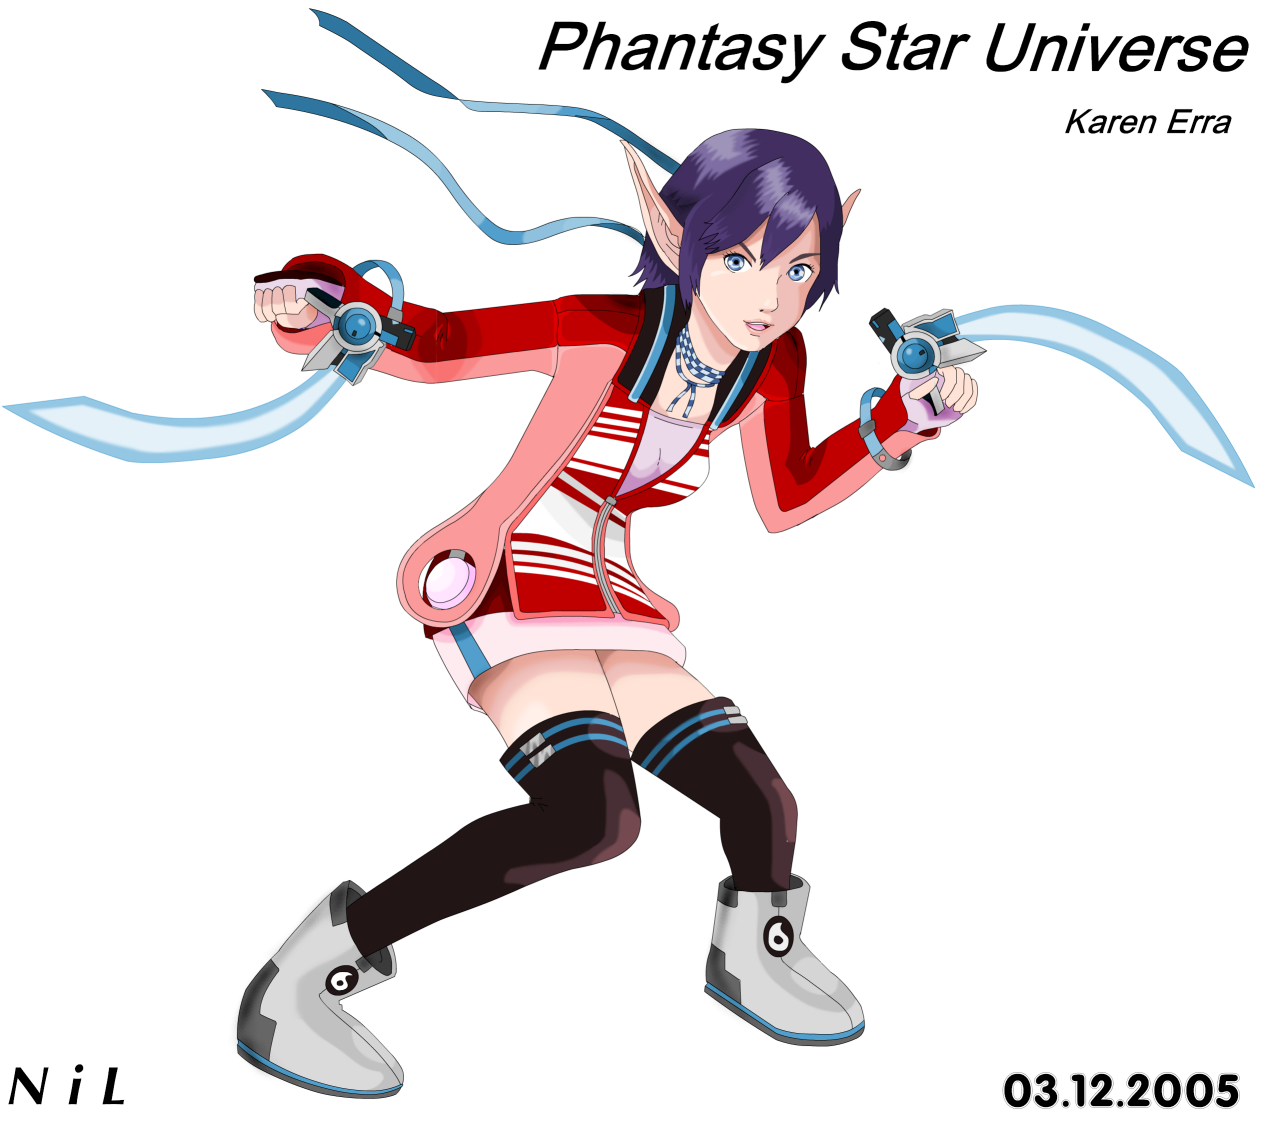 phantasy star universe sythesis The best place to get cheats, codes, cheat codes, walkthrough, guide, faq, unlockables, achievements, and secrets for phantasy star universe for xbox 360.